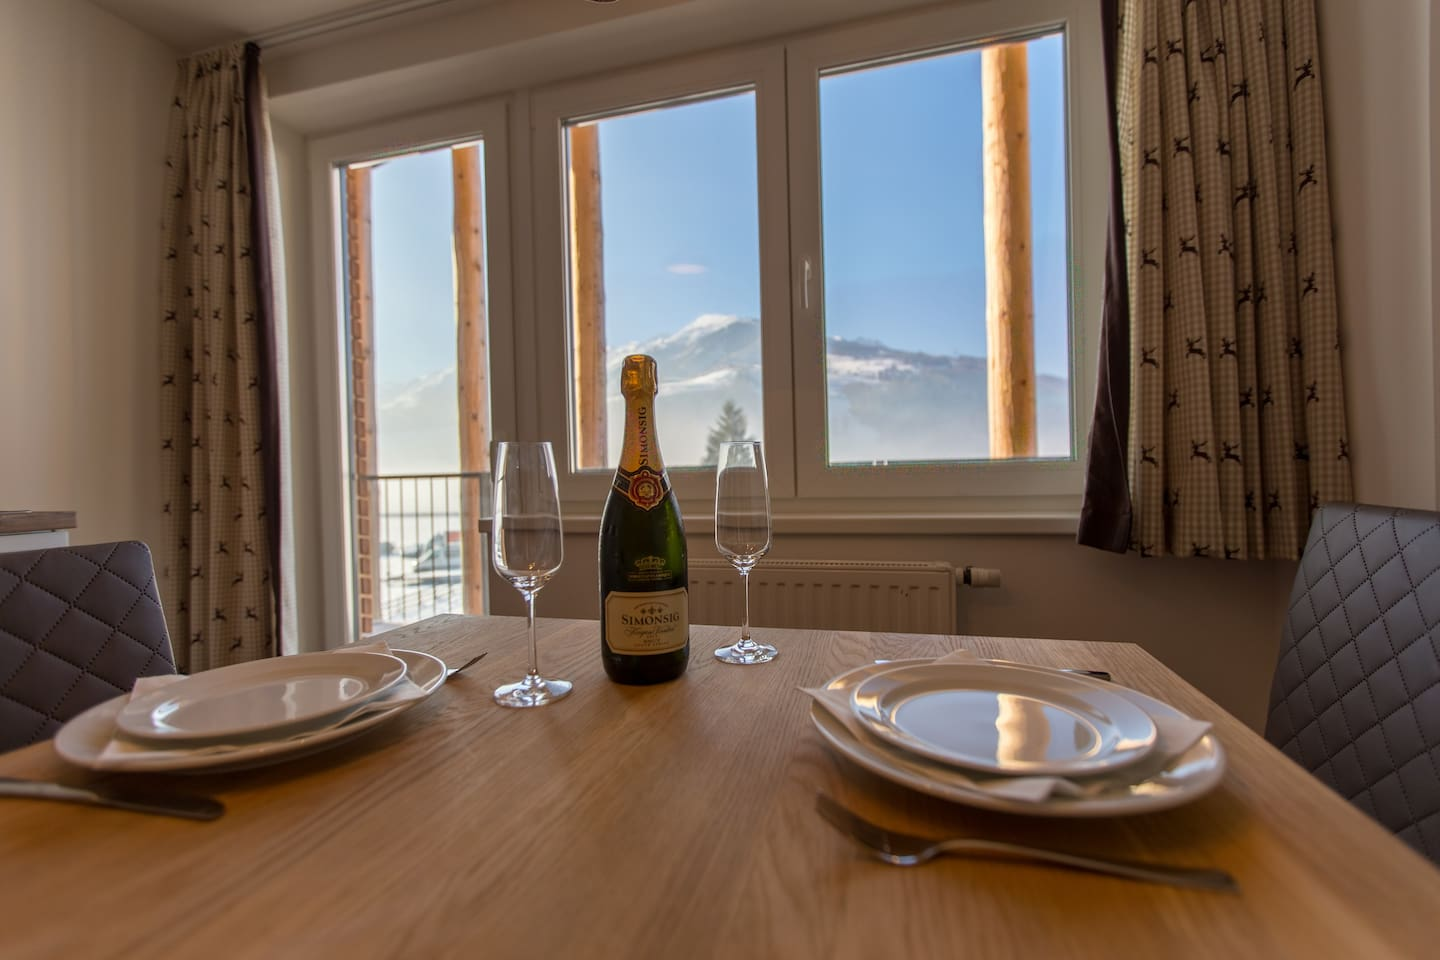 Our dining area with view on Kitzsteinhorn glacier